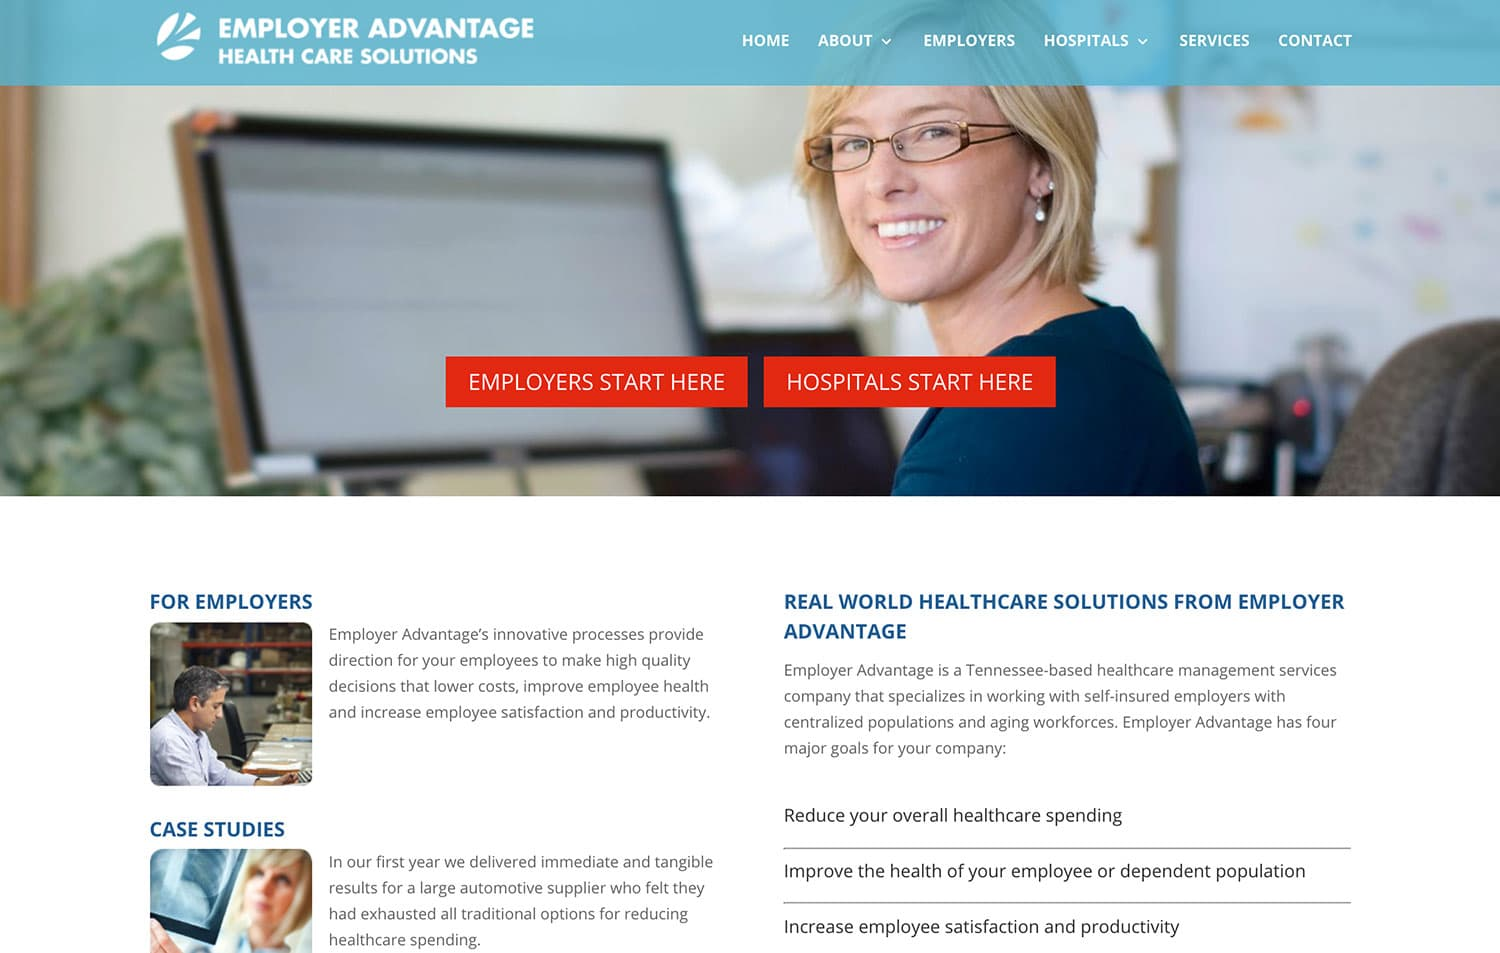 Employer Advantage Health Care Services. Franklin, TN